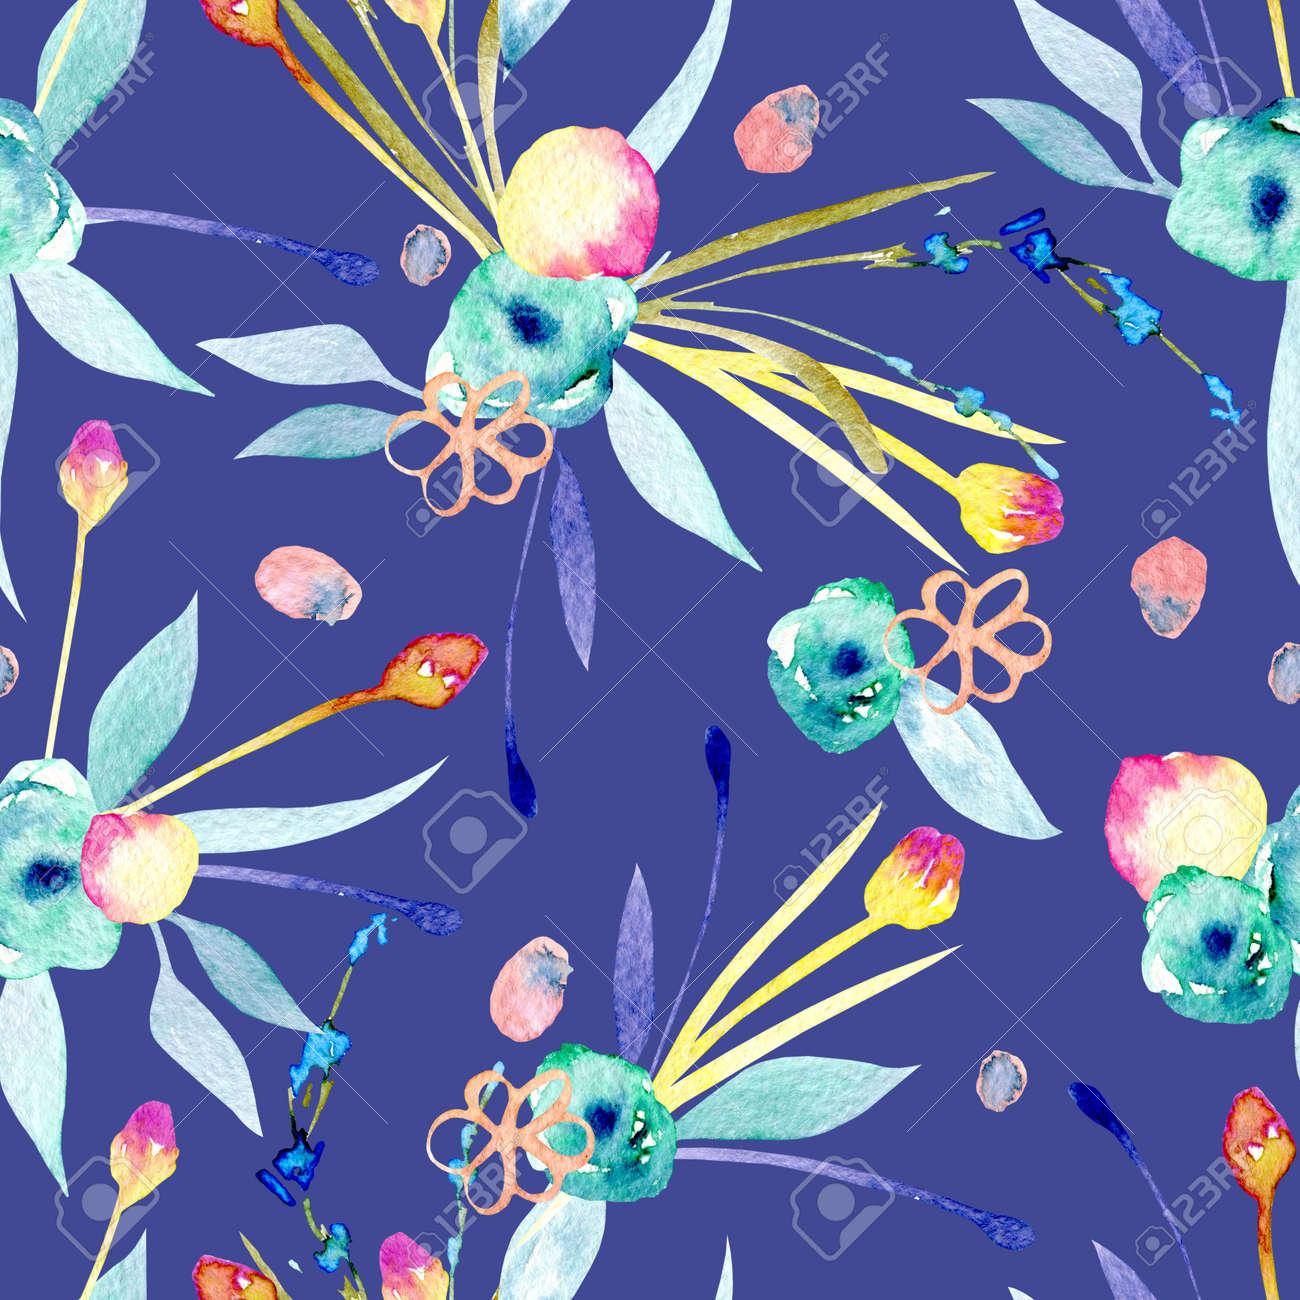 Seamless Pattern With Watercolor Abstract Yellow And Blue Flowers